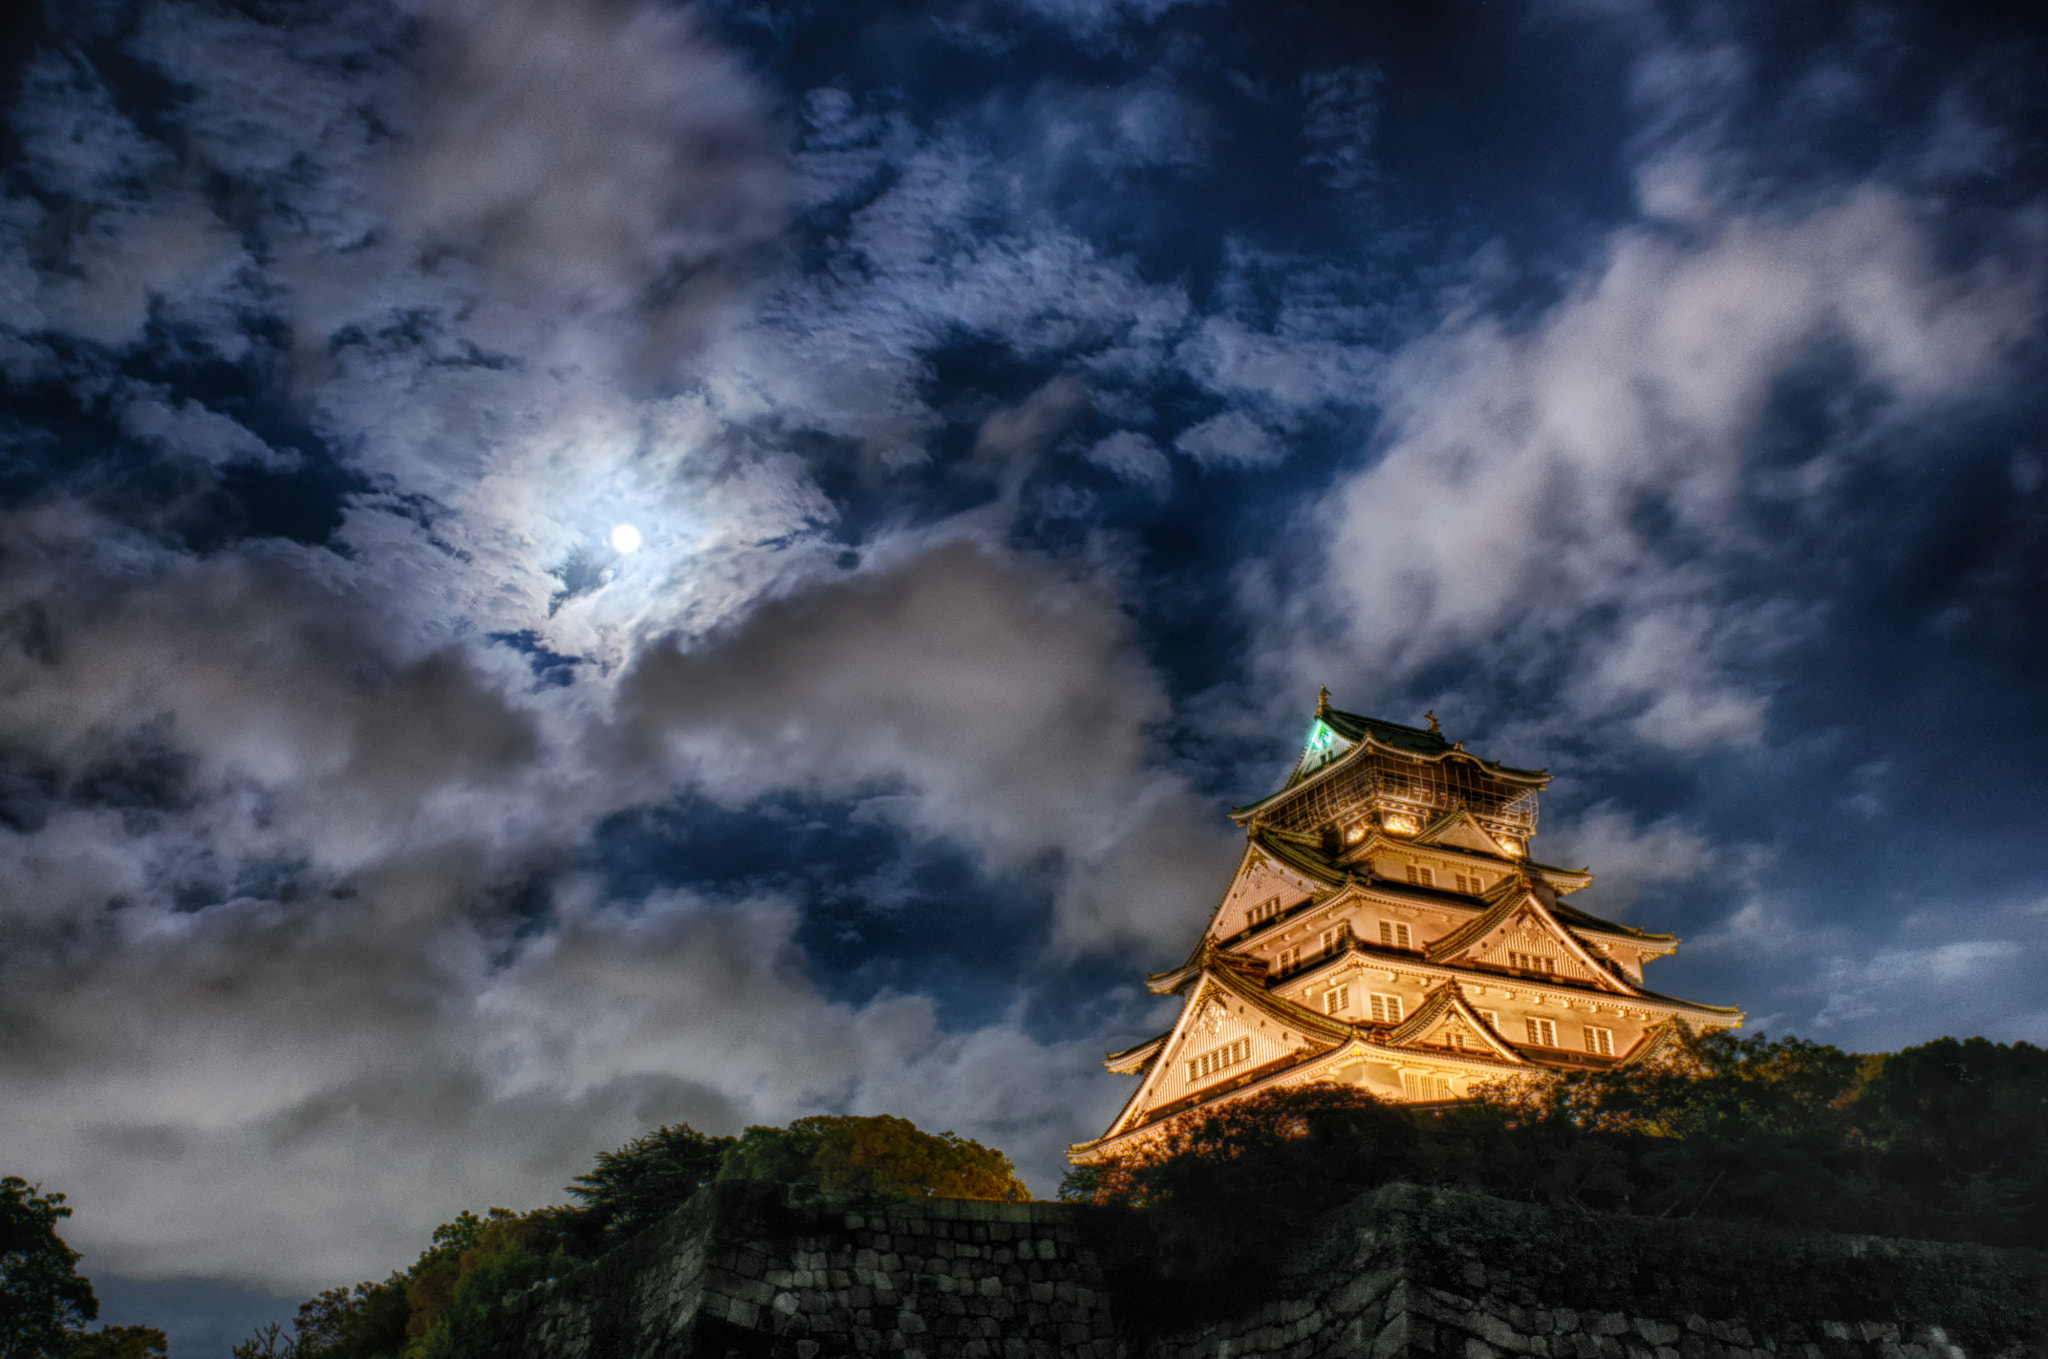 Photograph Bark at at the moon by Yoshihiko Wada on 500px